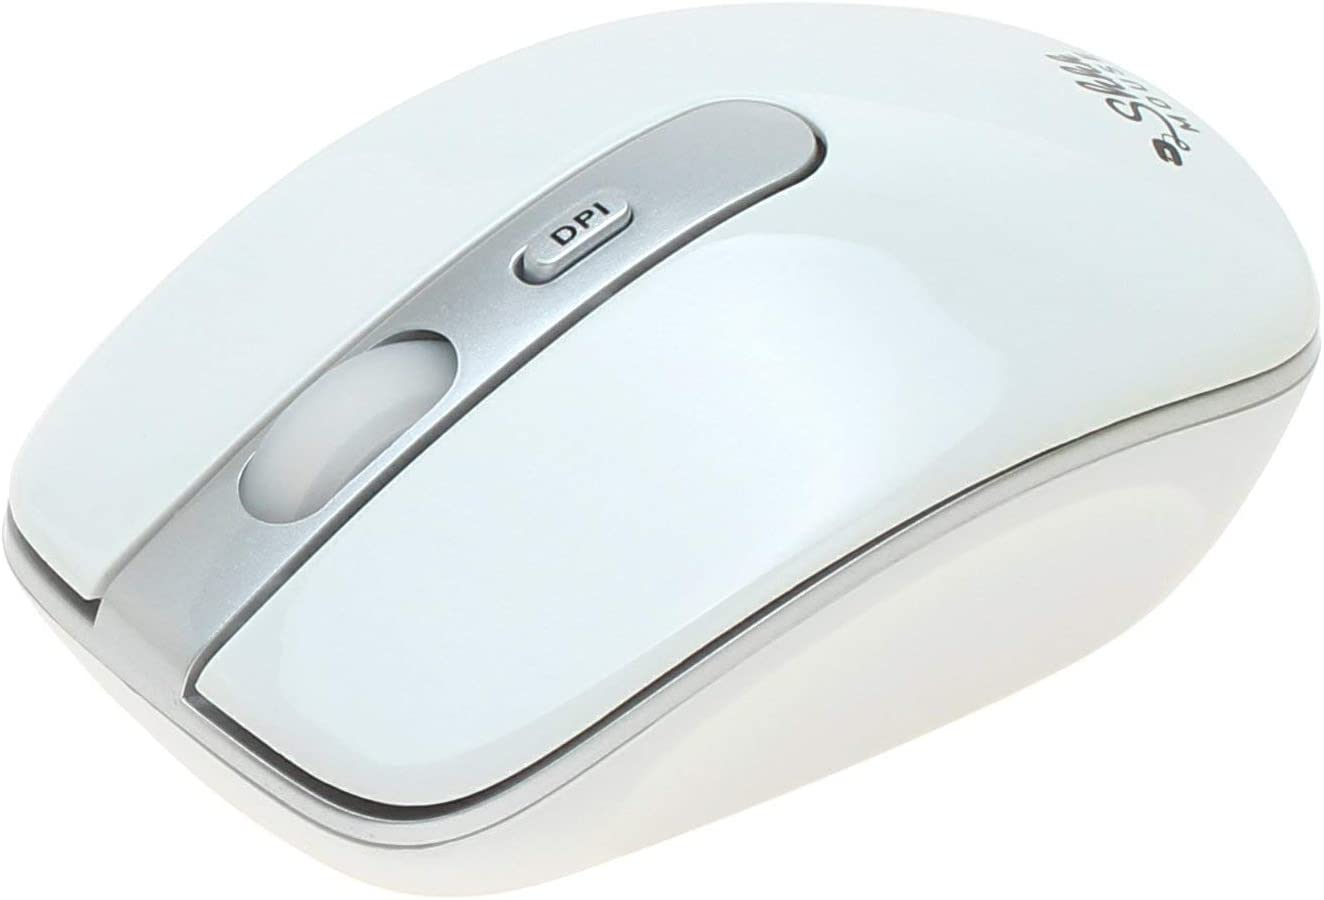 Silent Cordless Mice with 3 Adjustable DPI Levels for Chromebook White ShhhMouse Wireless Ergonomic Mouse for Laptop /& Computer with USB